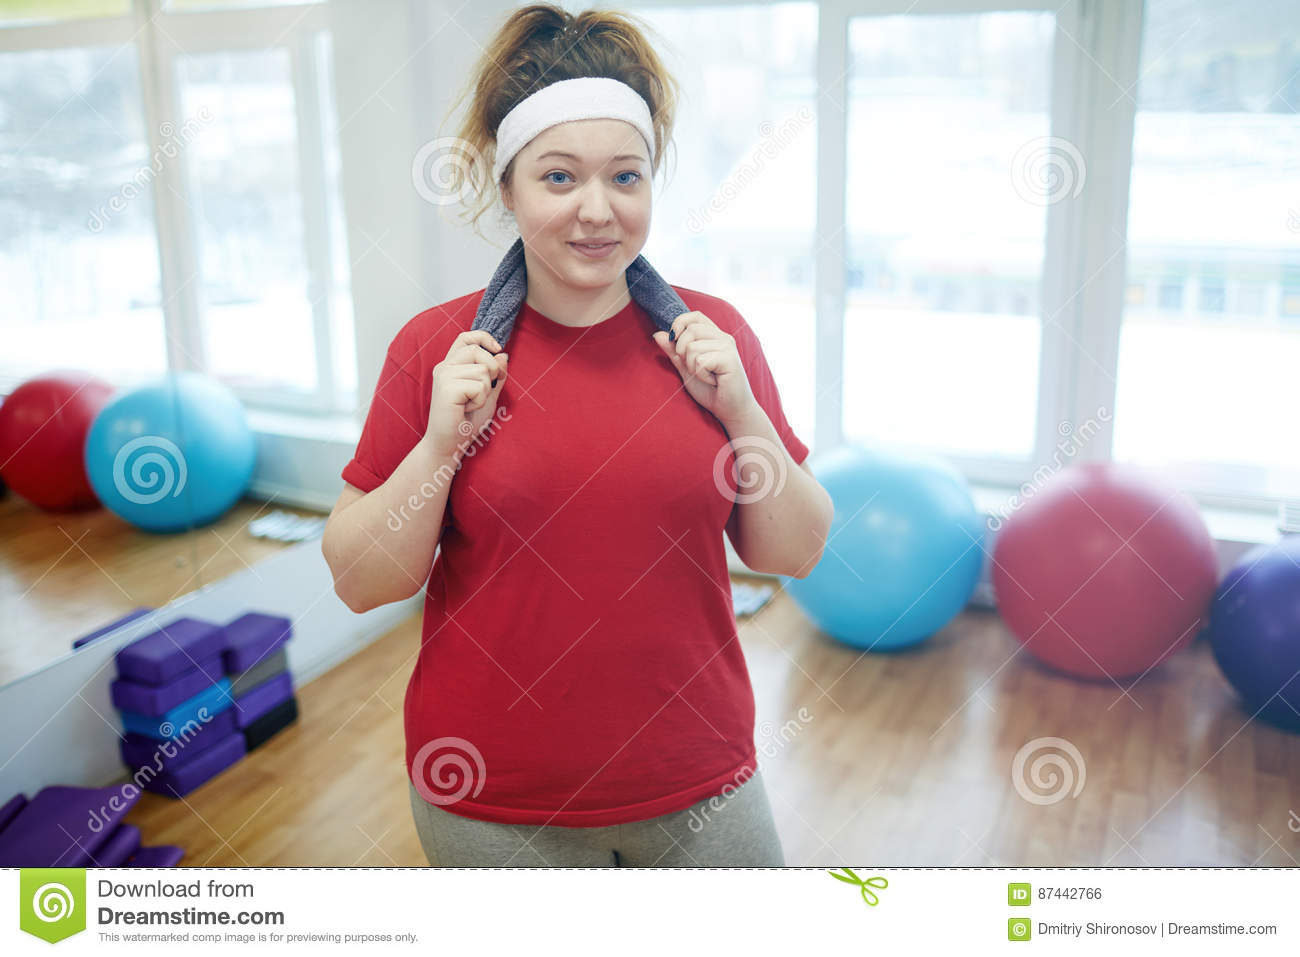 Smiling Obese Woman after Workout in Fitness studio